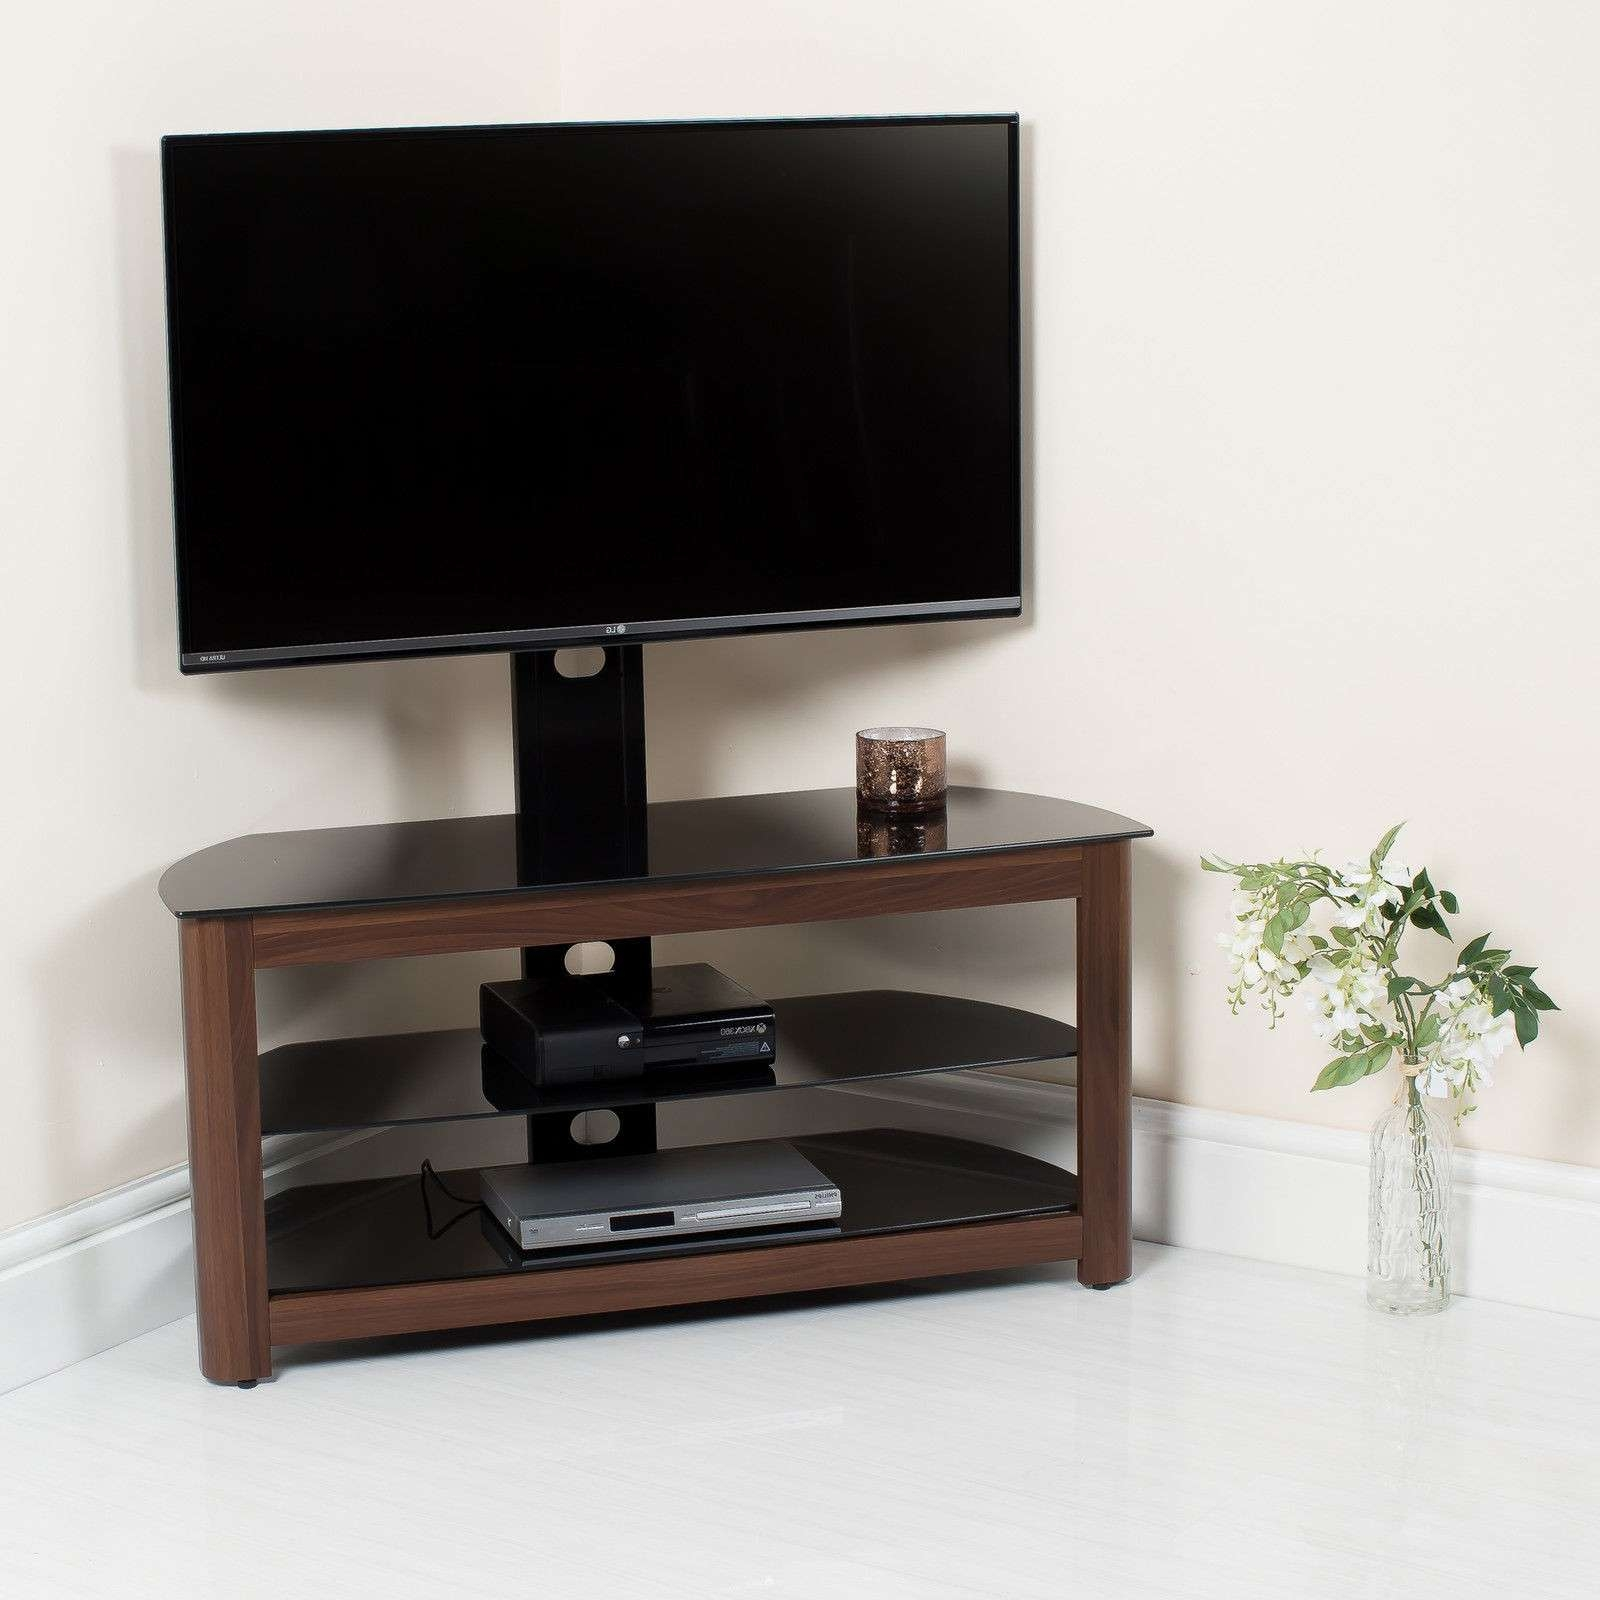 Walnut High Gloss Tv Stand With Swivel Bracket Abreo Home Furniture Within Walnut Tv Stands (View 14 of 15)